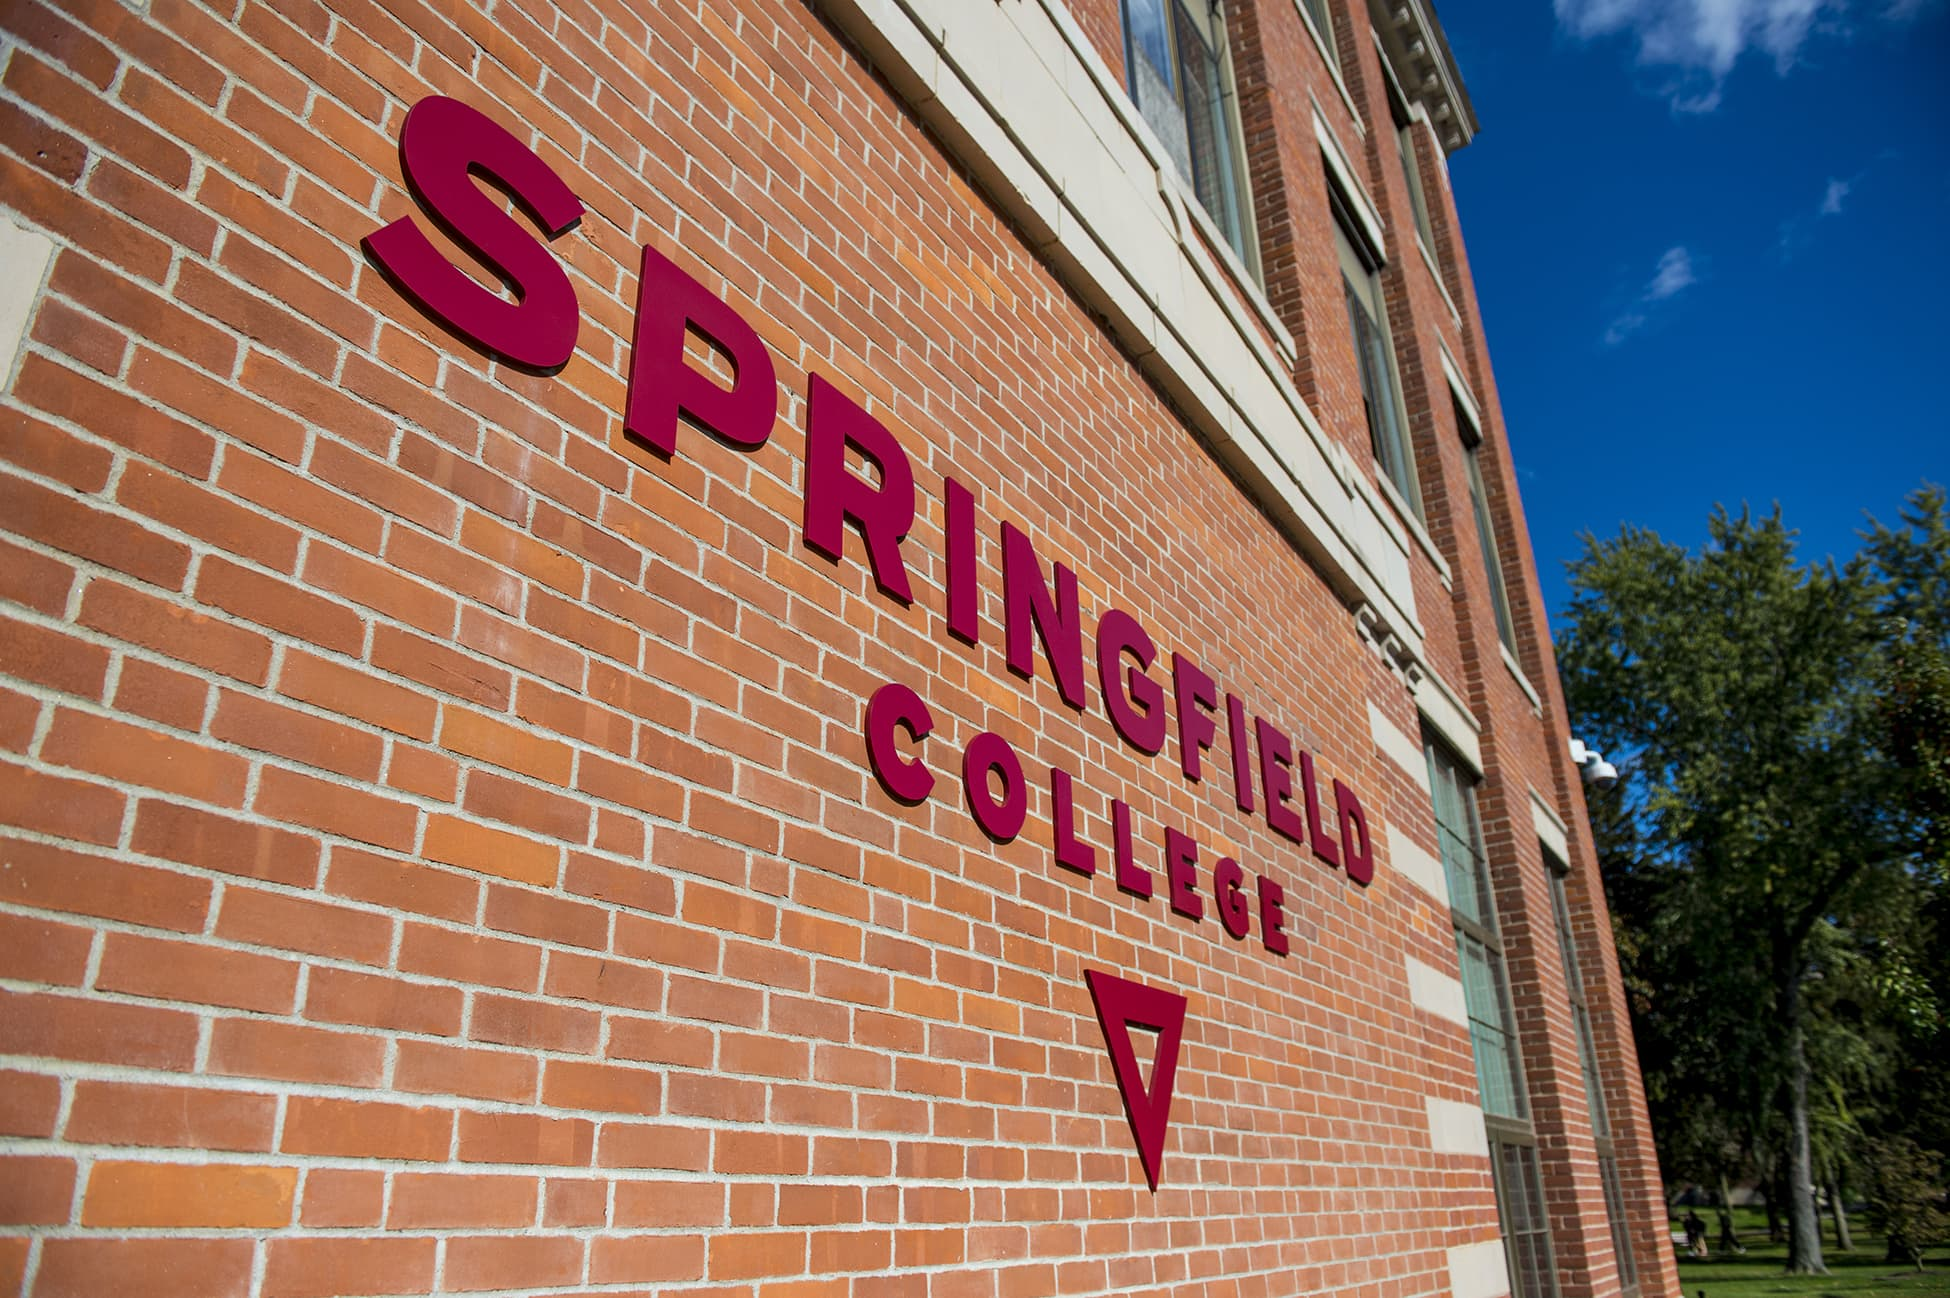 The campus of Springfield College